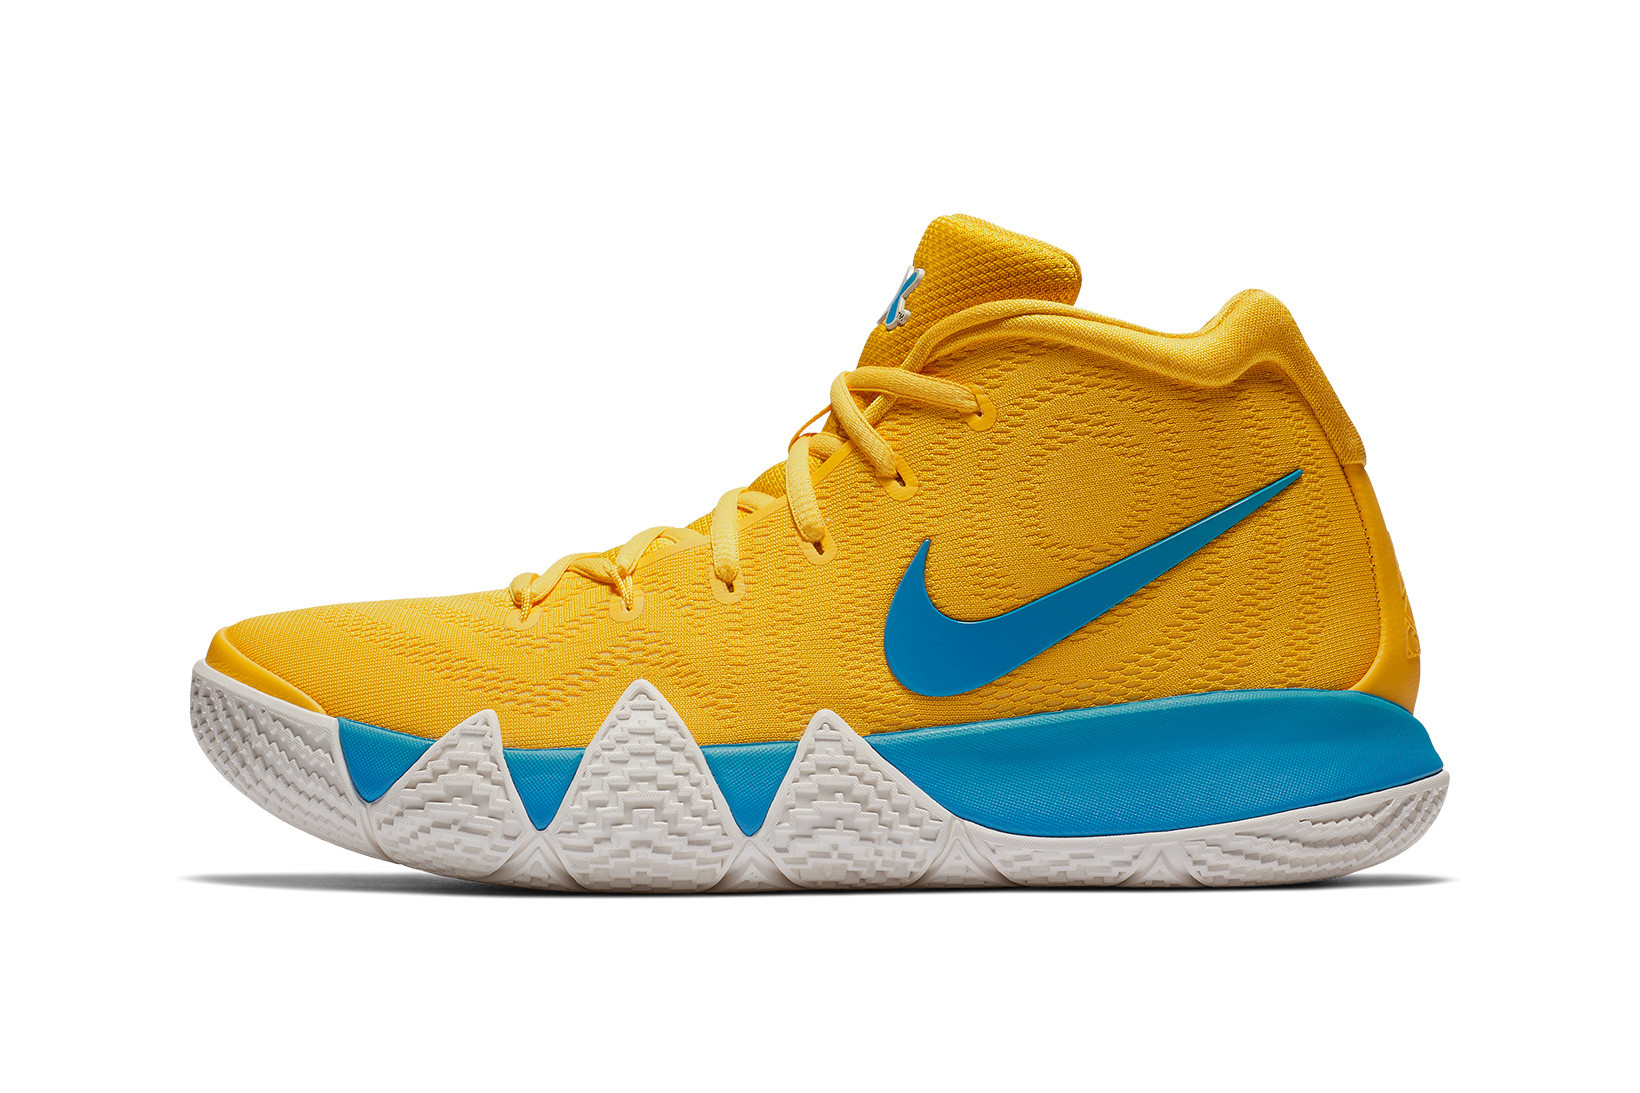 kyrie 4s yellow